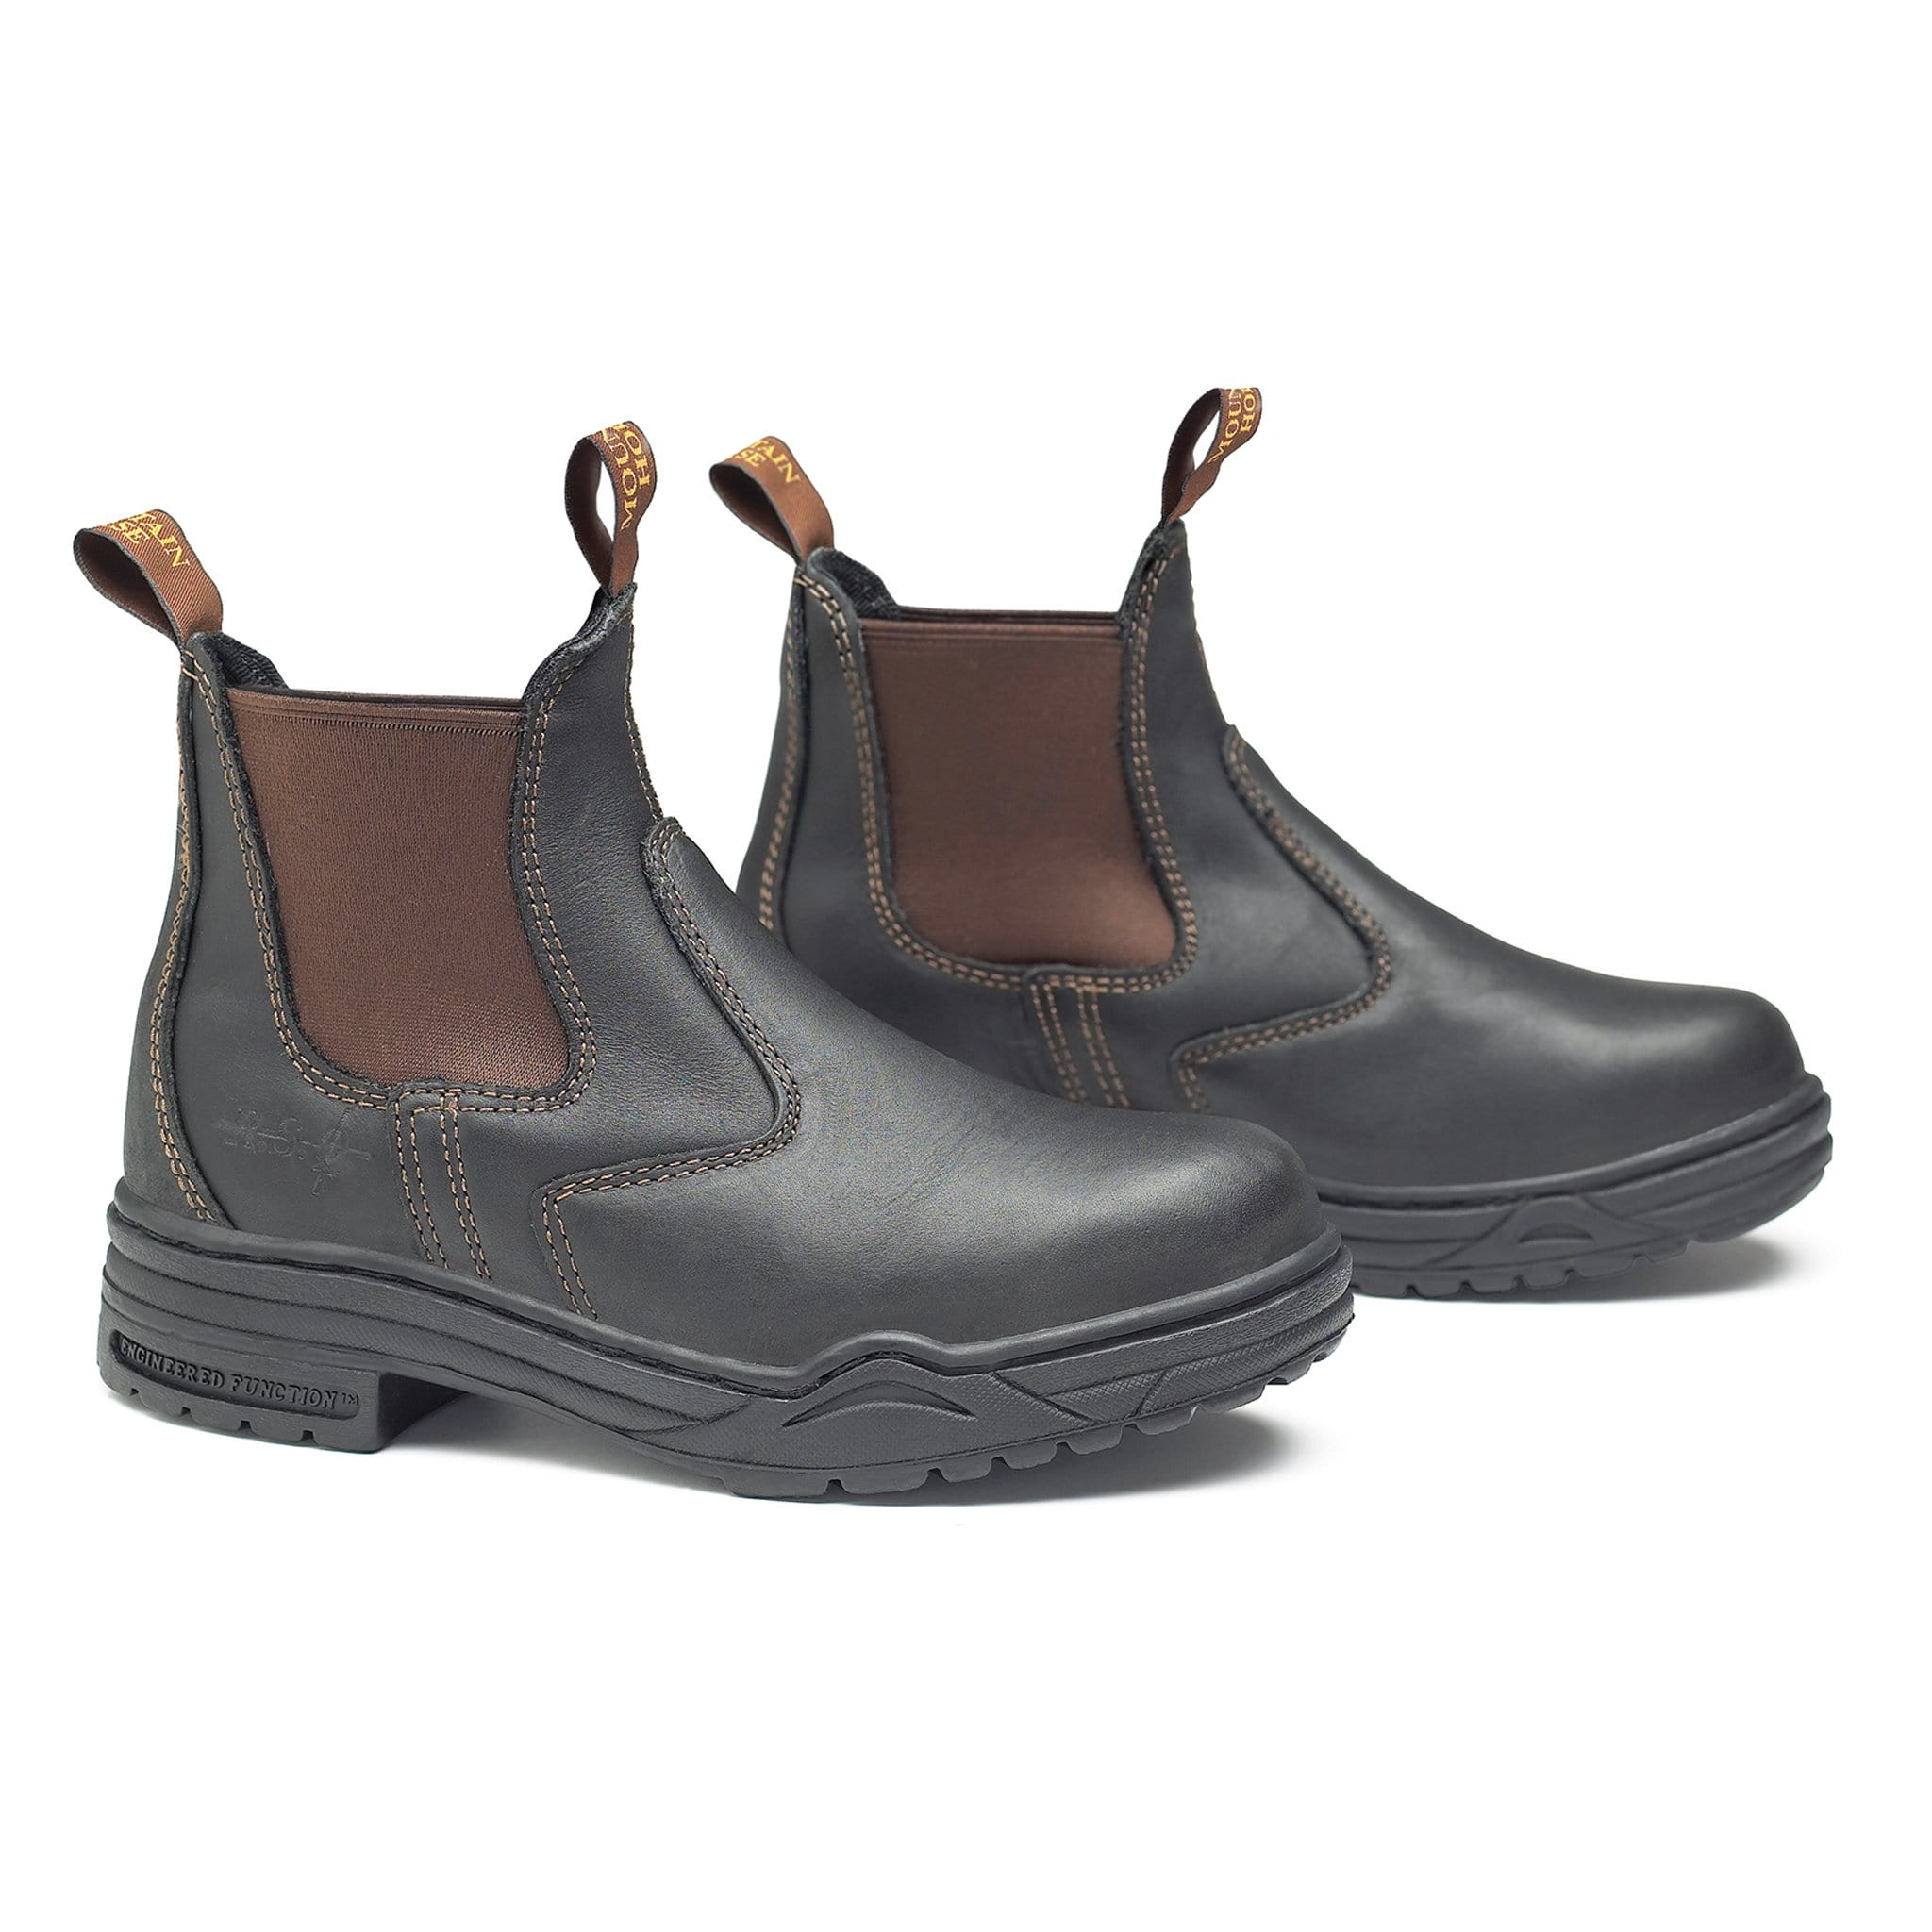 Mountain Horse Protective Jodhpur Boot 01070